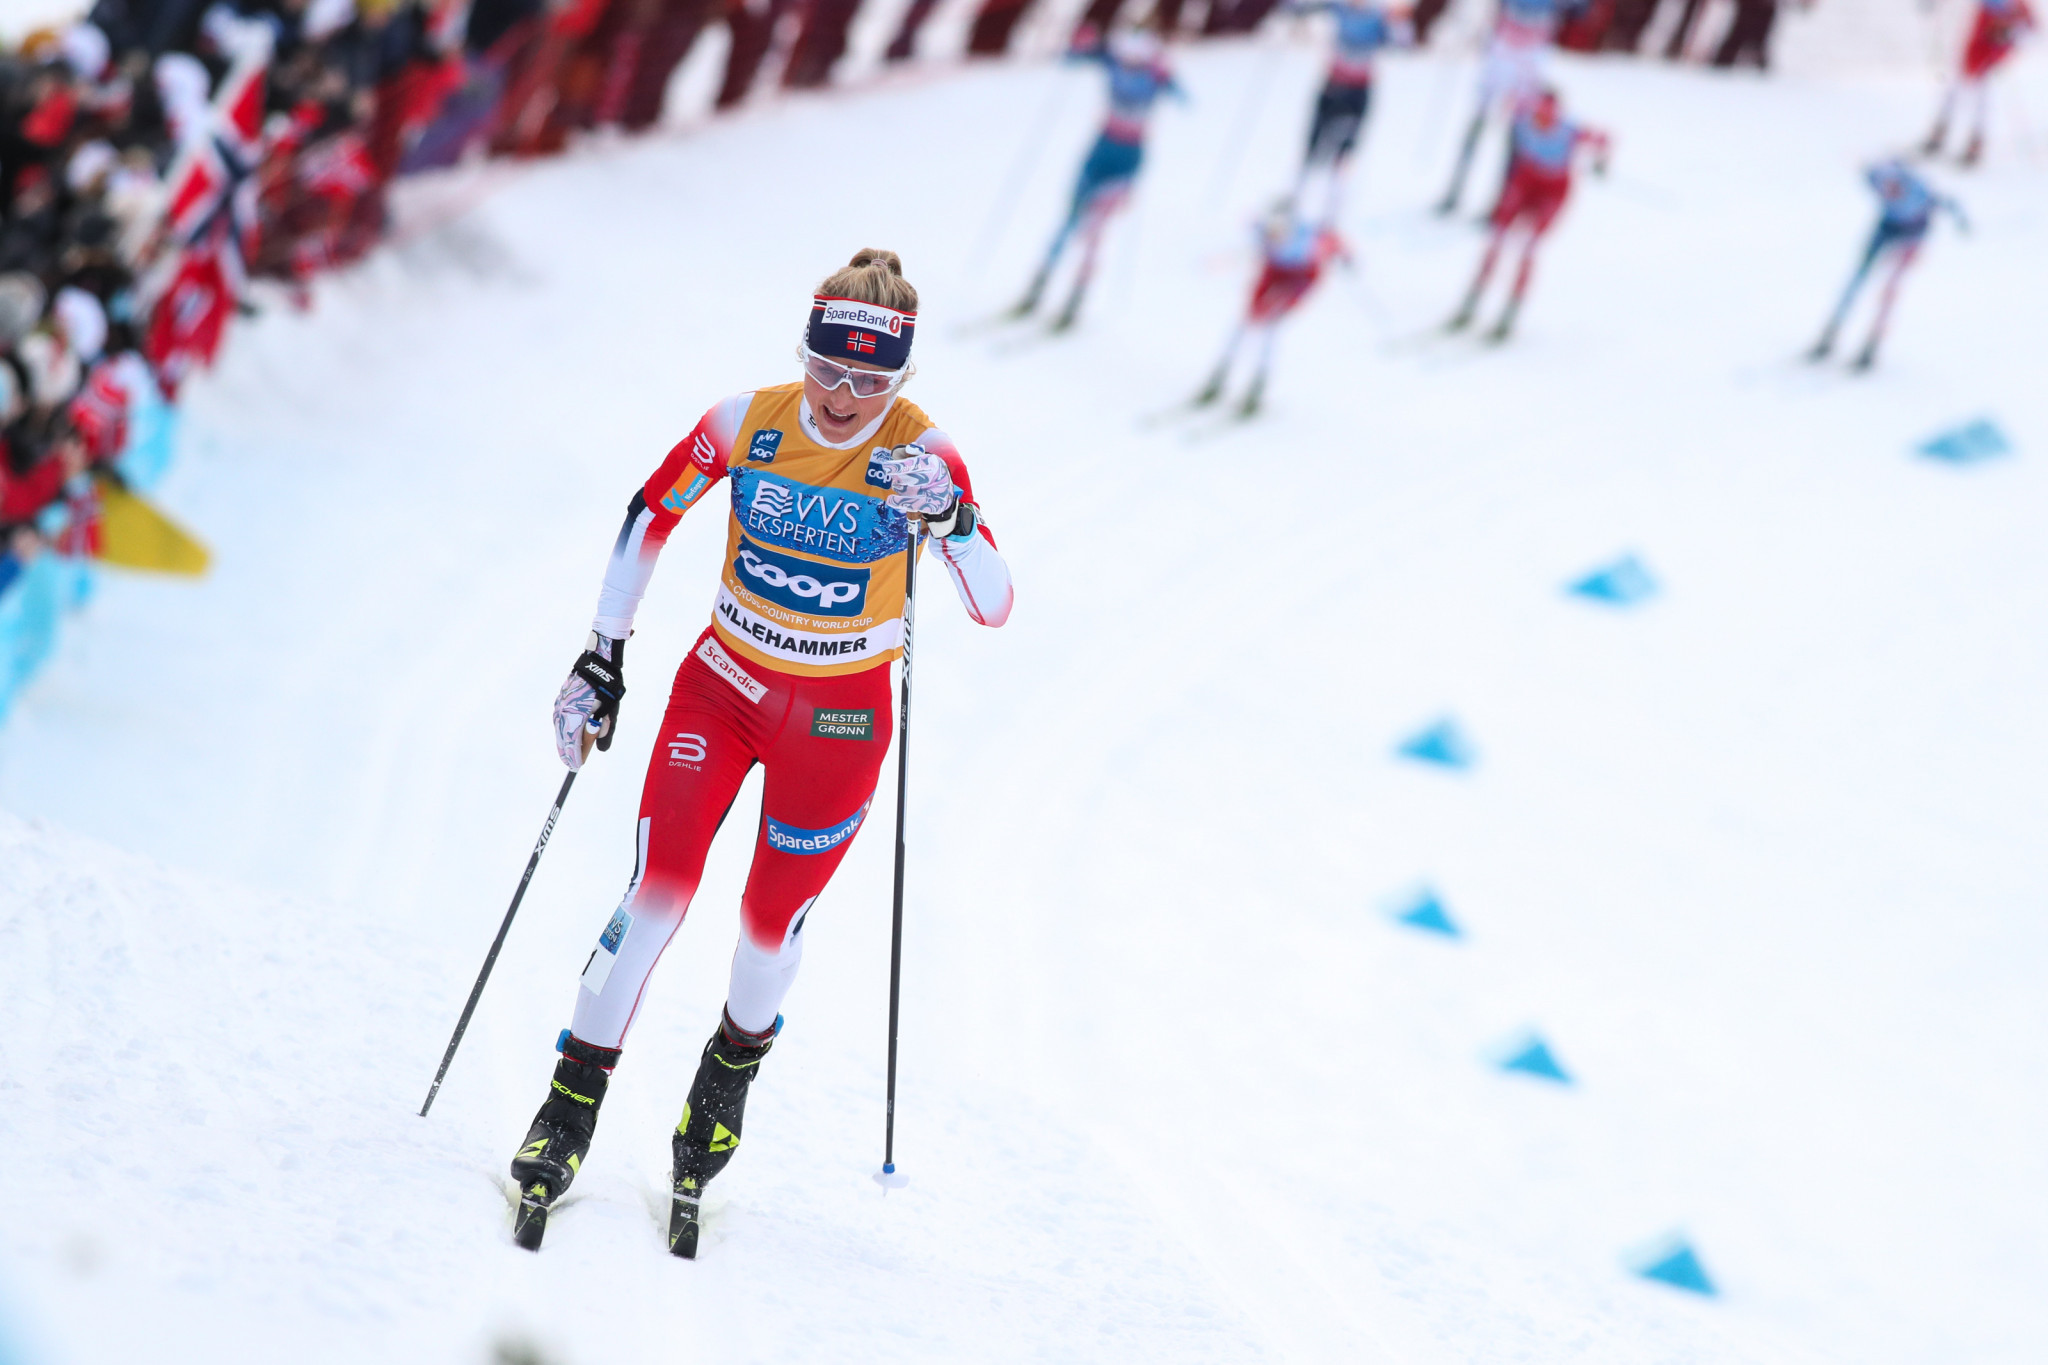 Johaug aims to continue FIS Cross-Country World Cup winning streak in Davos